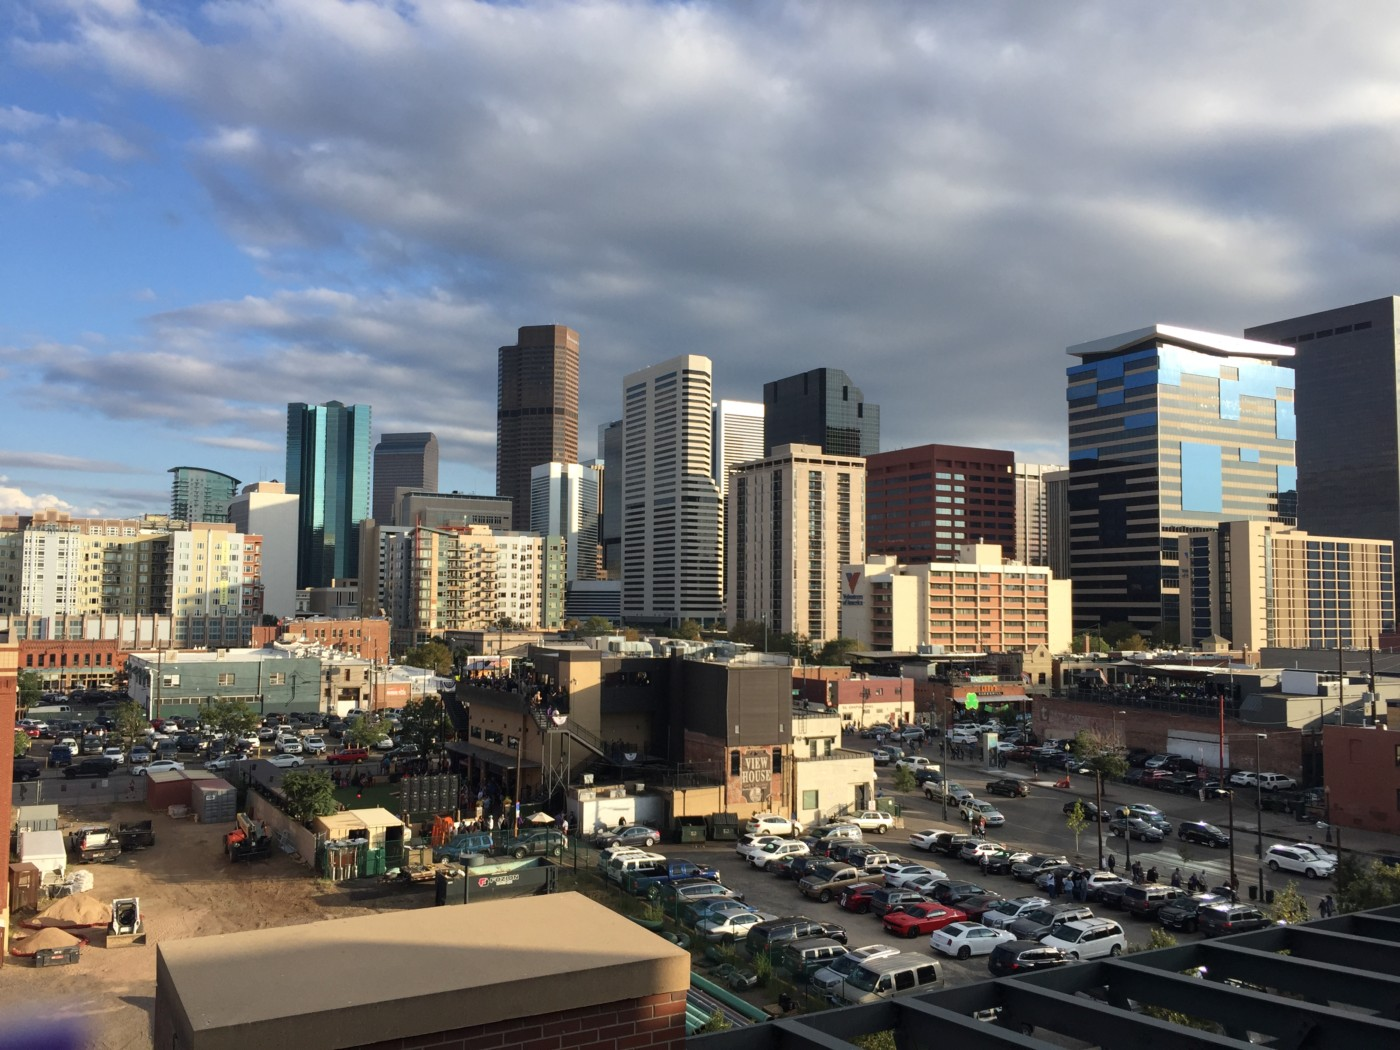 VIDEO: 8 Historical places to visit in downtown Denver, Colorado